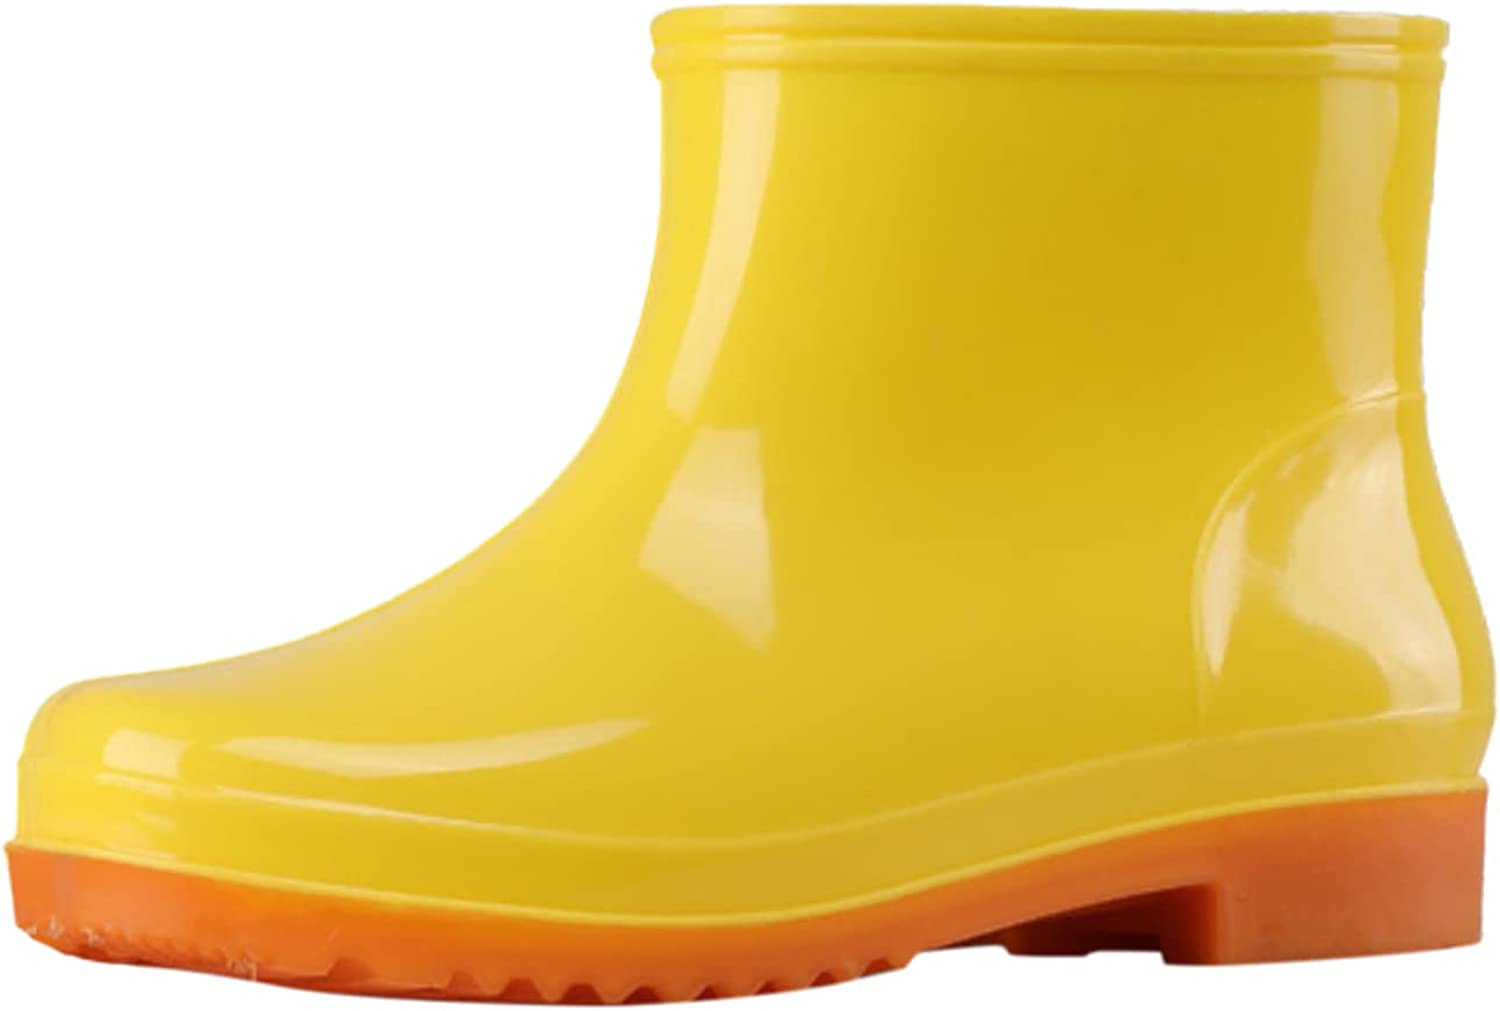 USYFAKGH Women's Rain Boots Waterproof Rubber Rain Shoes for Ladies Mid Calf Garden Boots with Comfort Insole